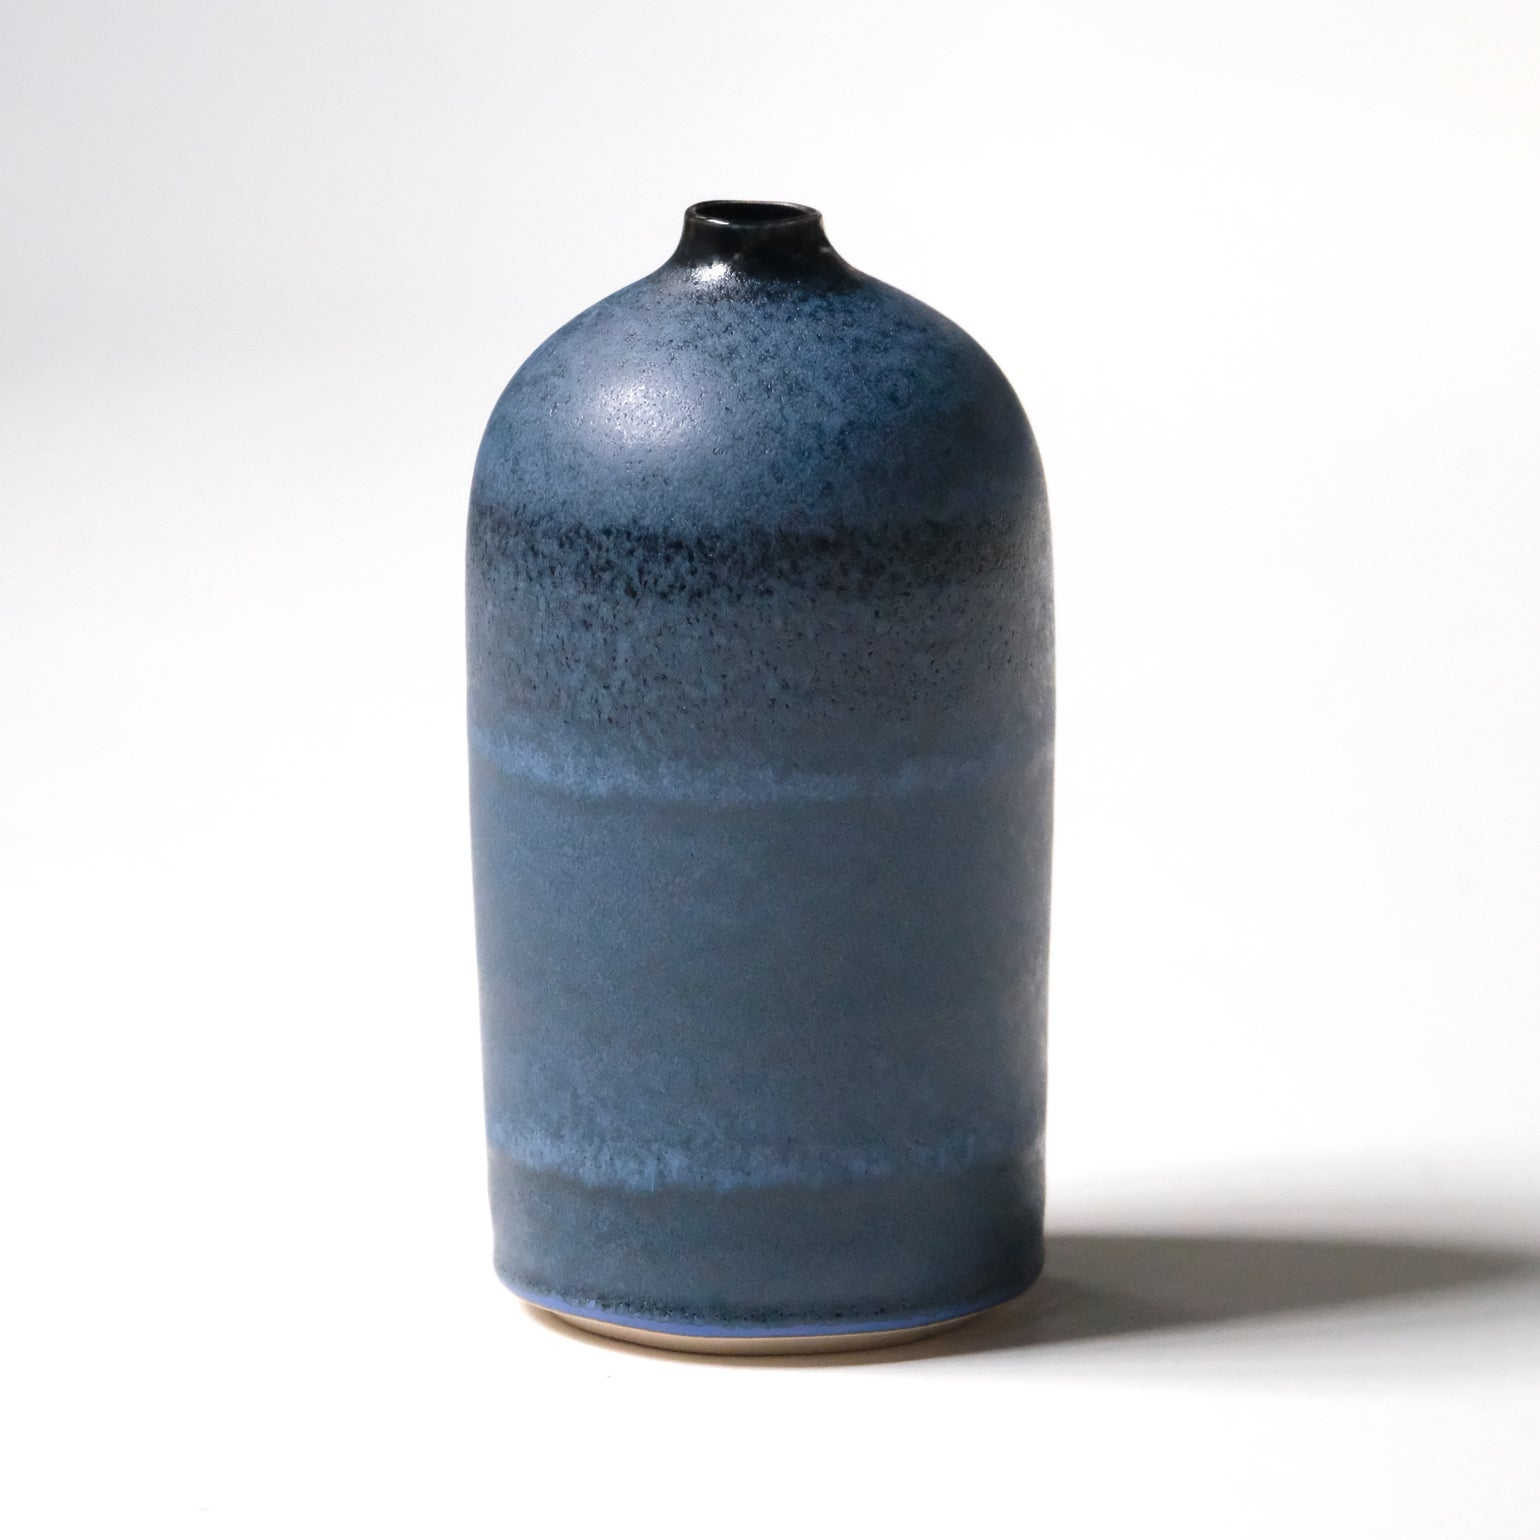 Image of UNIKA BOTTLE IN MIDNIGHT BLUE GLAZE